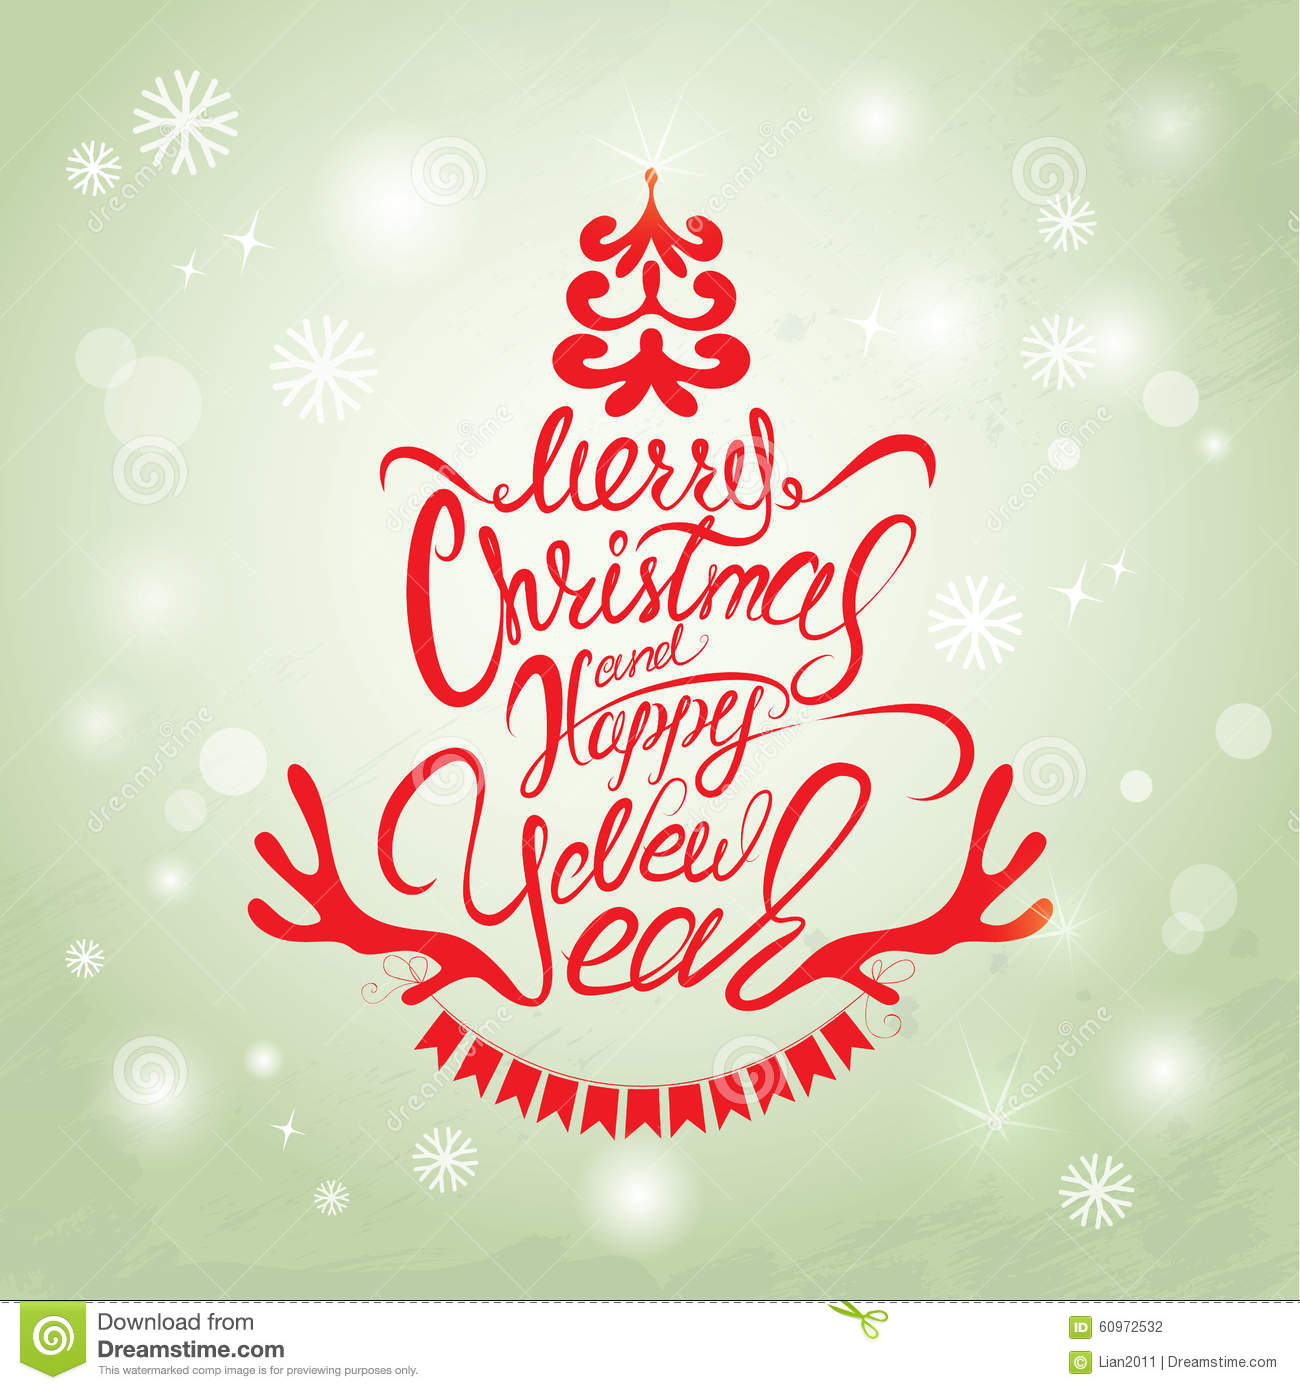 merry christmas and happy new year card calligraphy handwritten